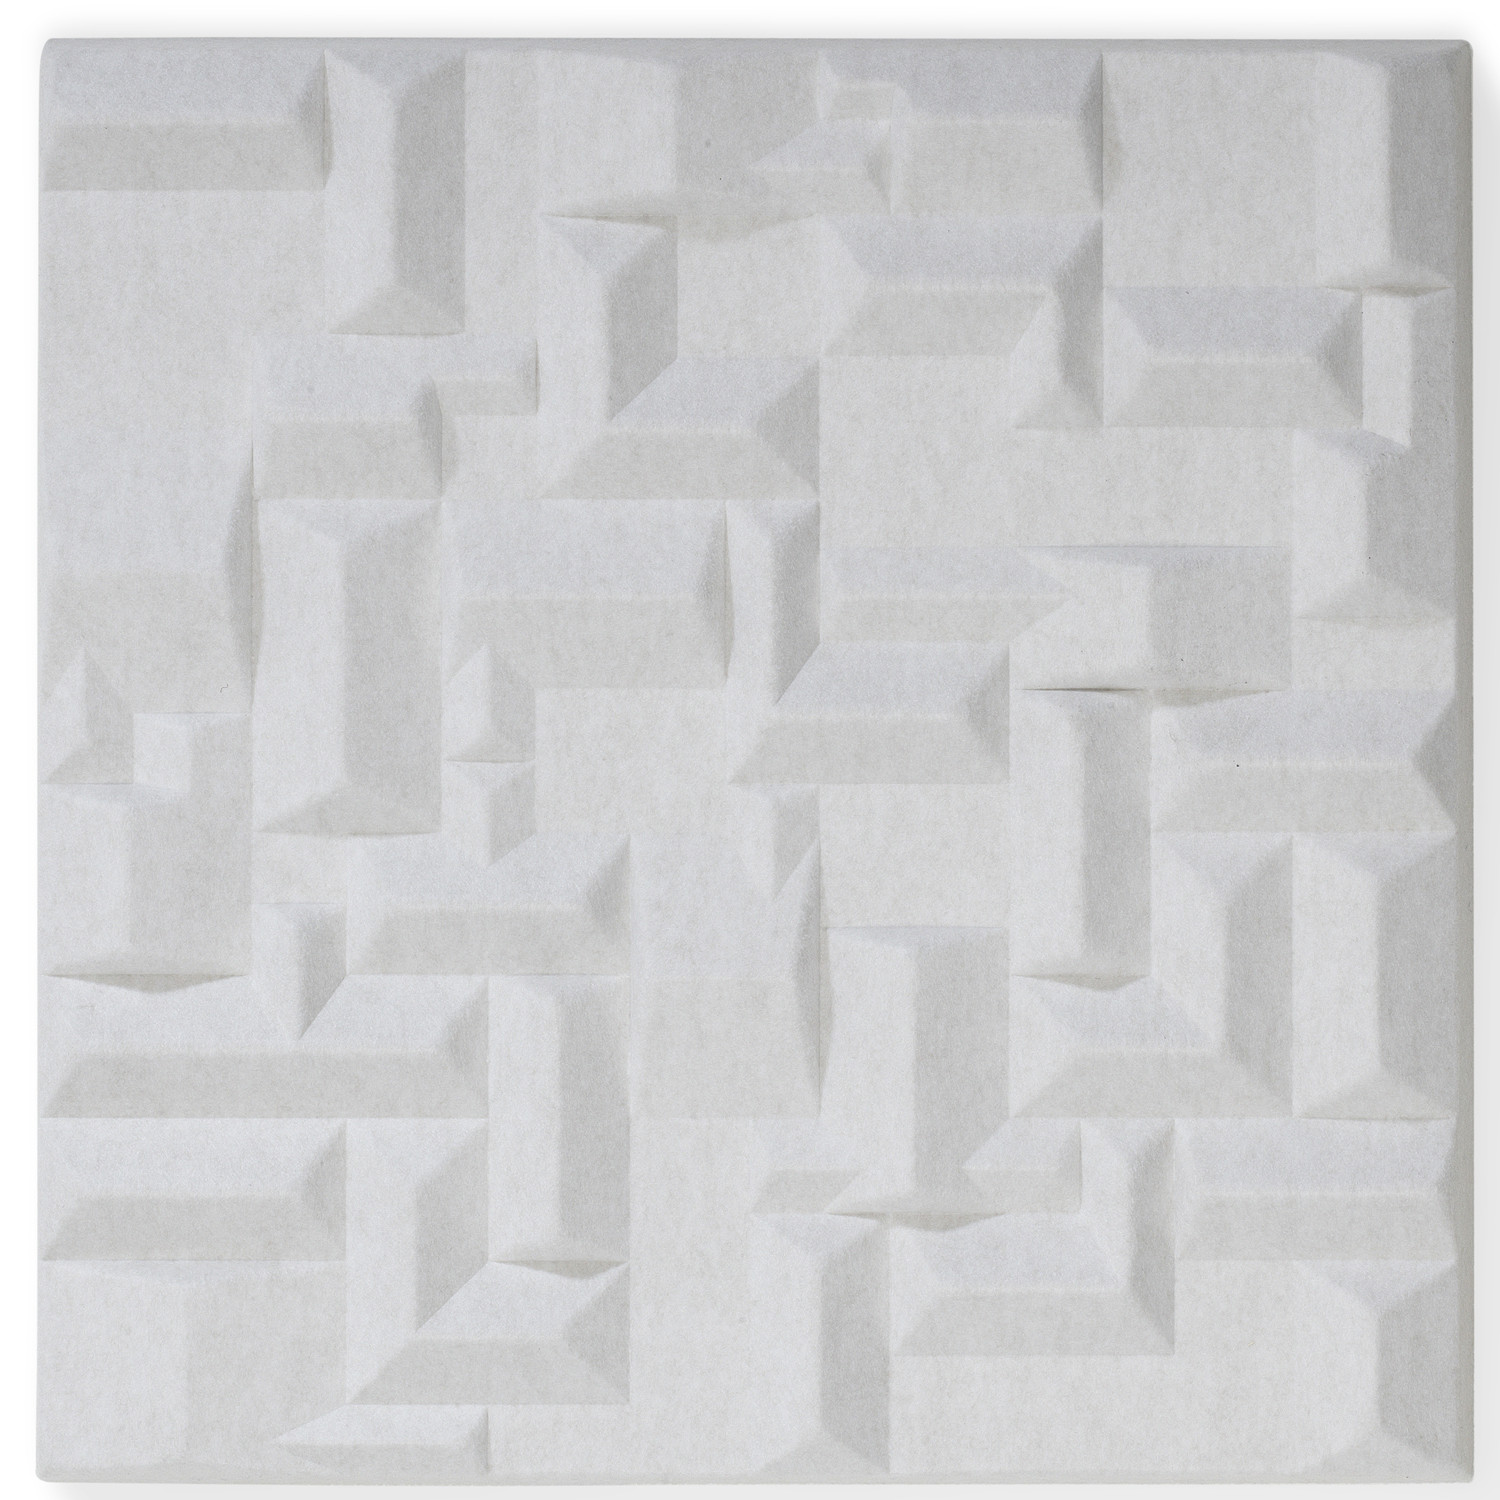 Village Acoustic Wall Panel By Offecct